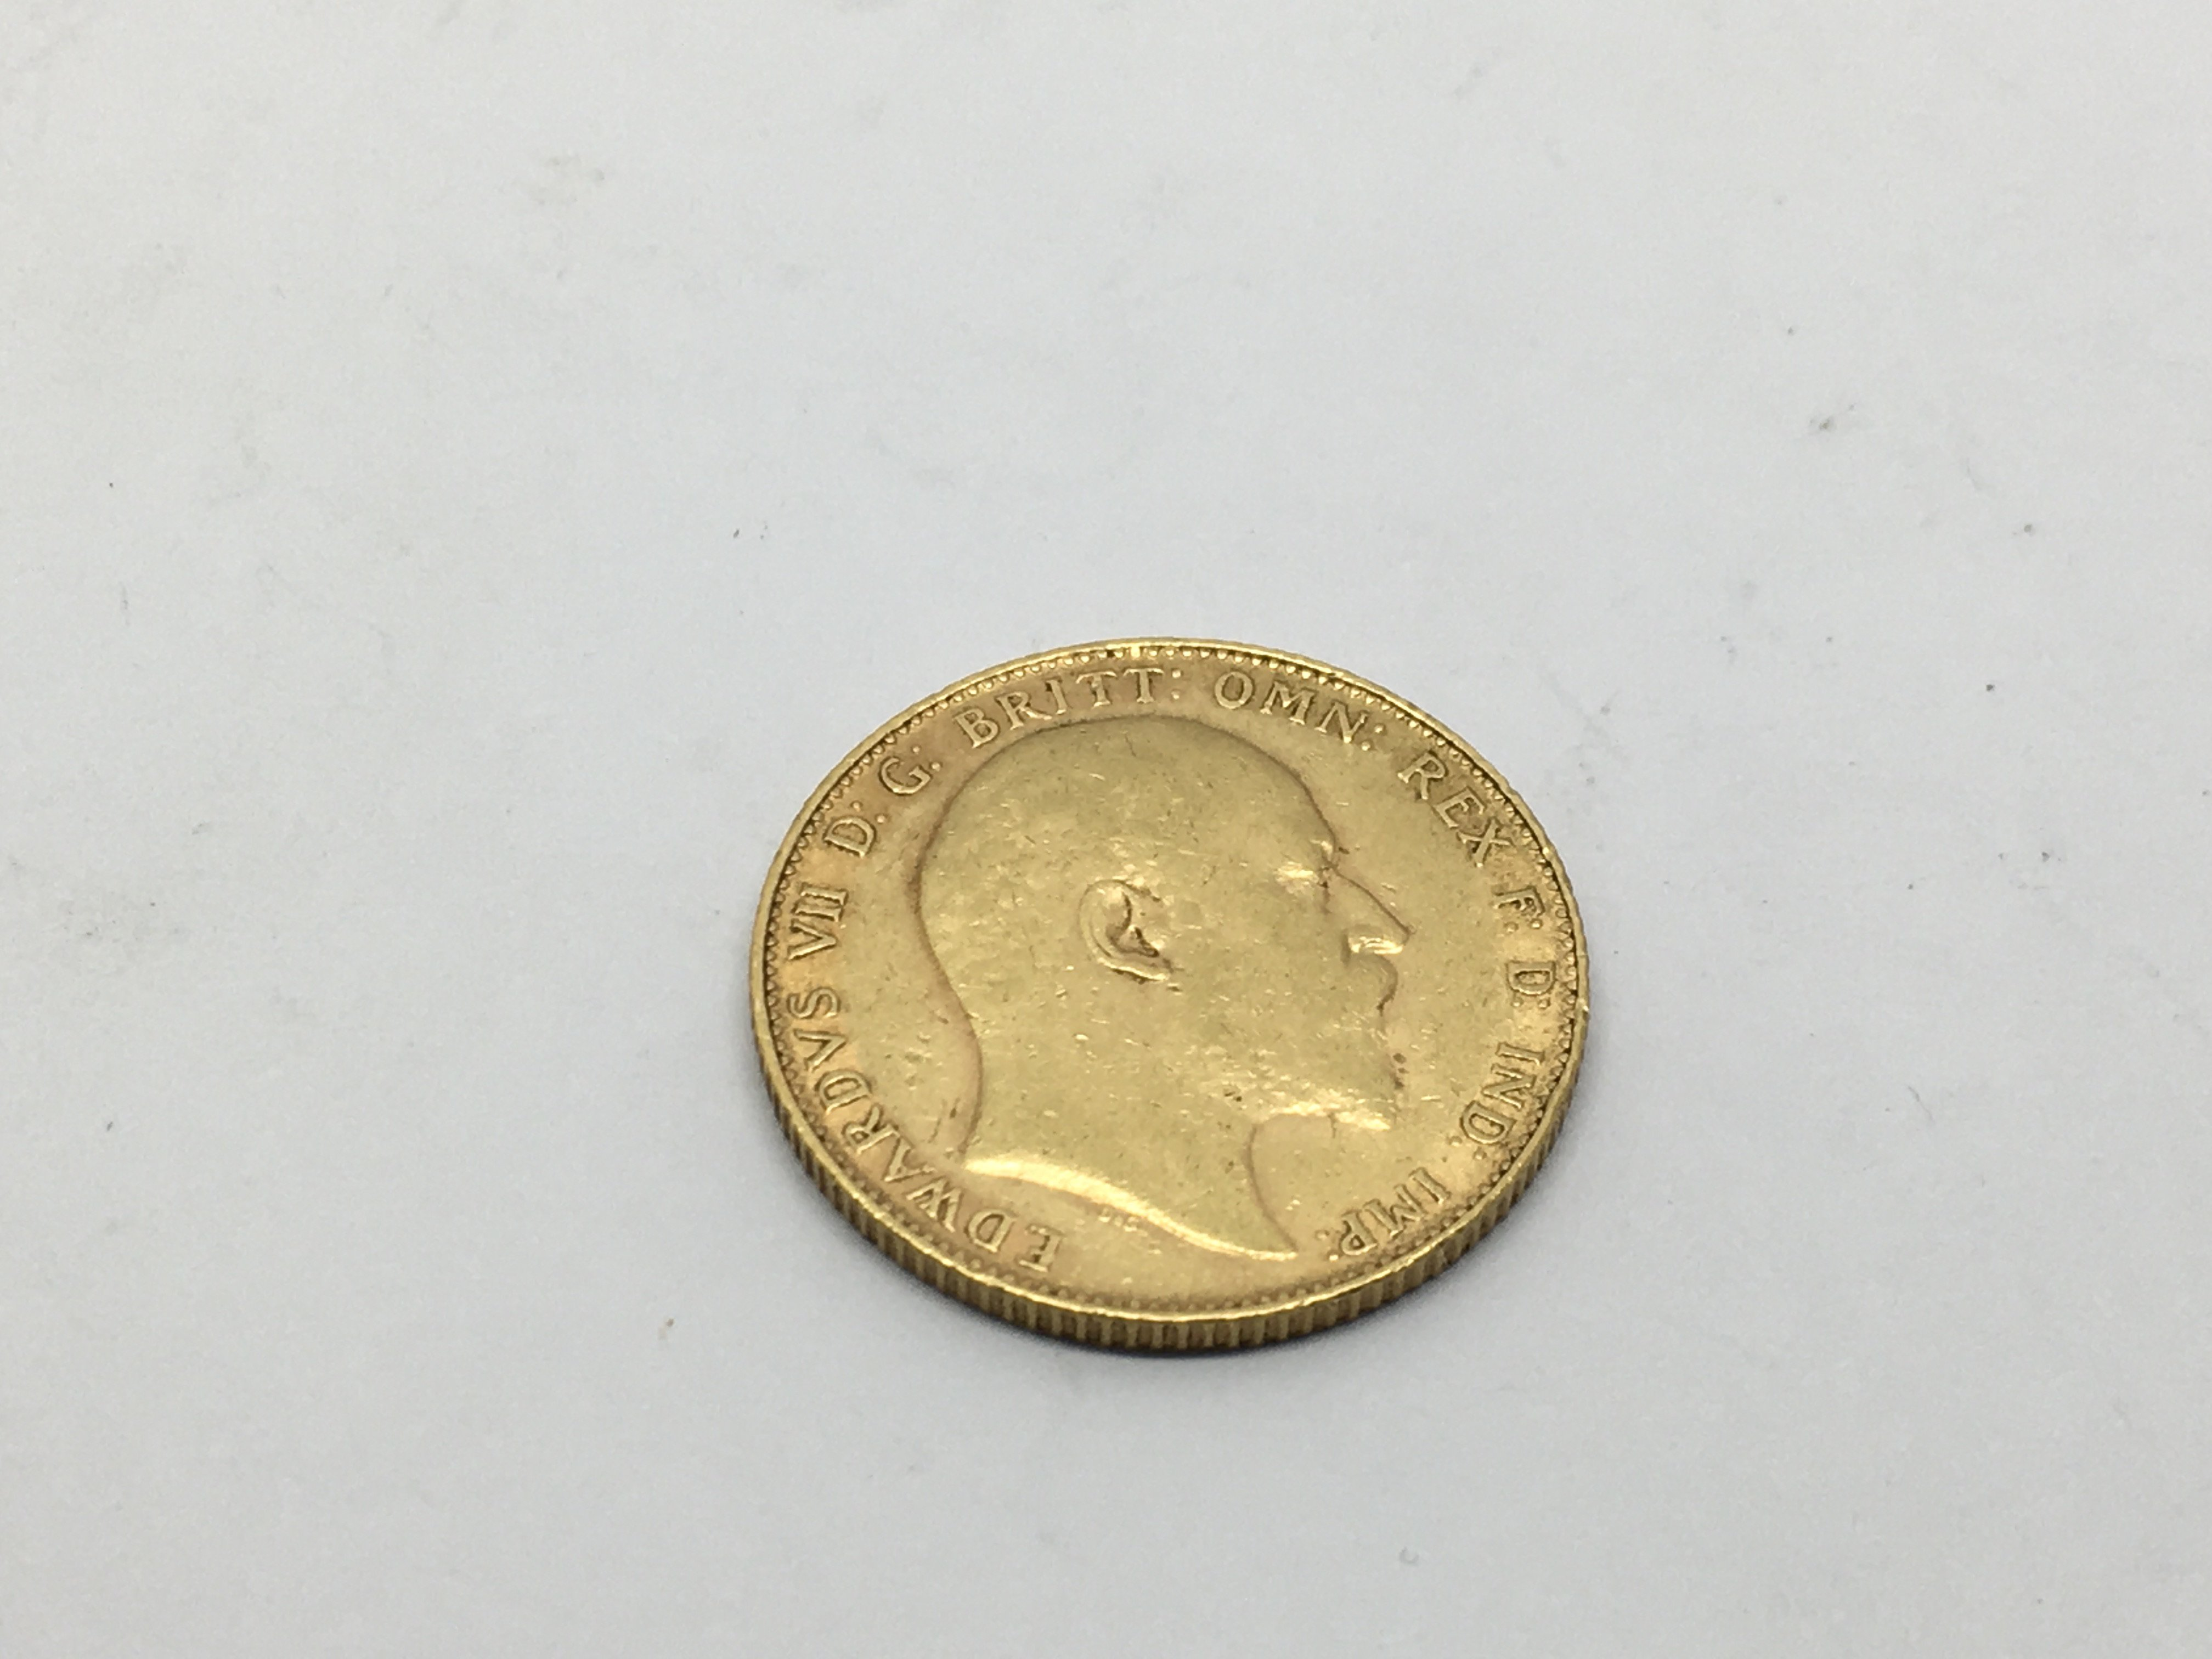 A 1910 gold sovereign, approx 8g. - Image 2 of 2